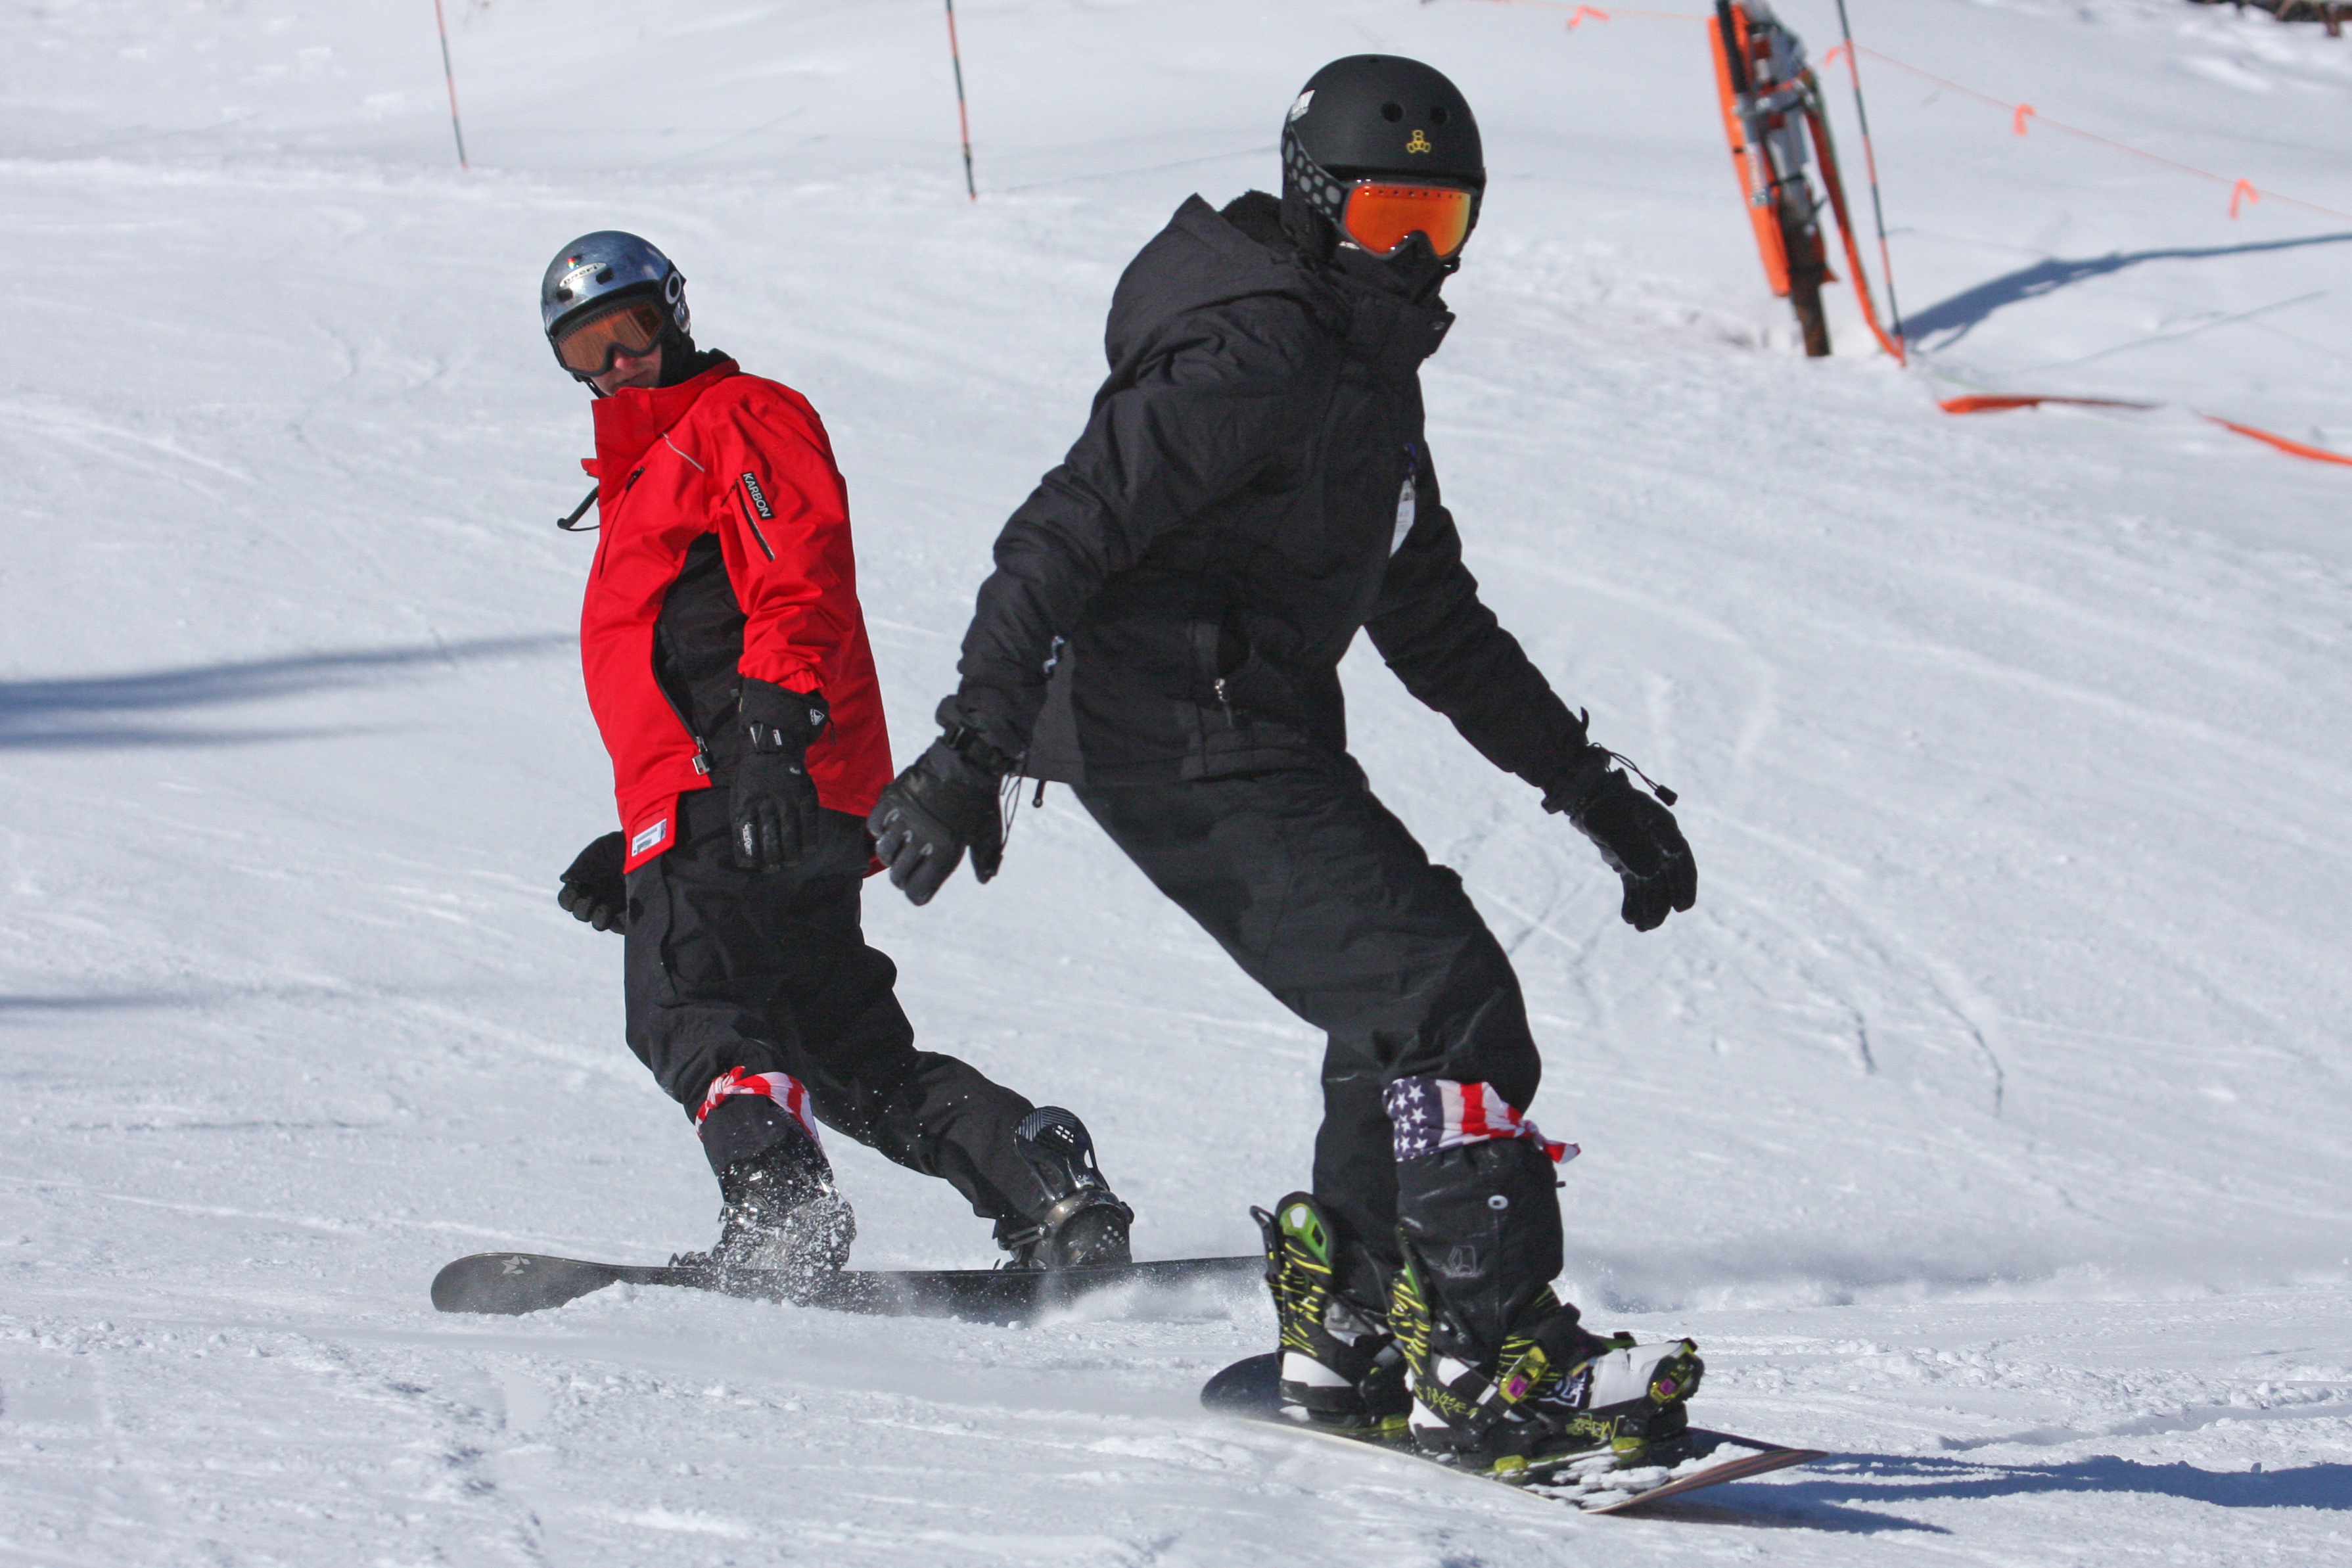 Snowboarding Images